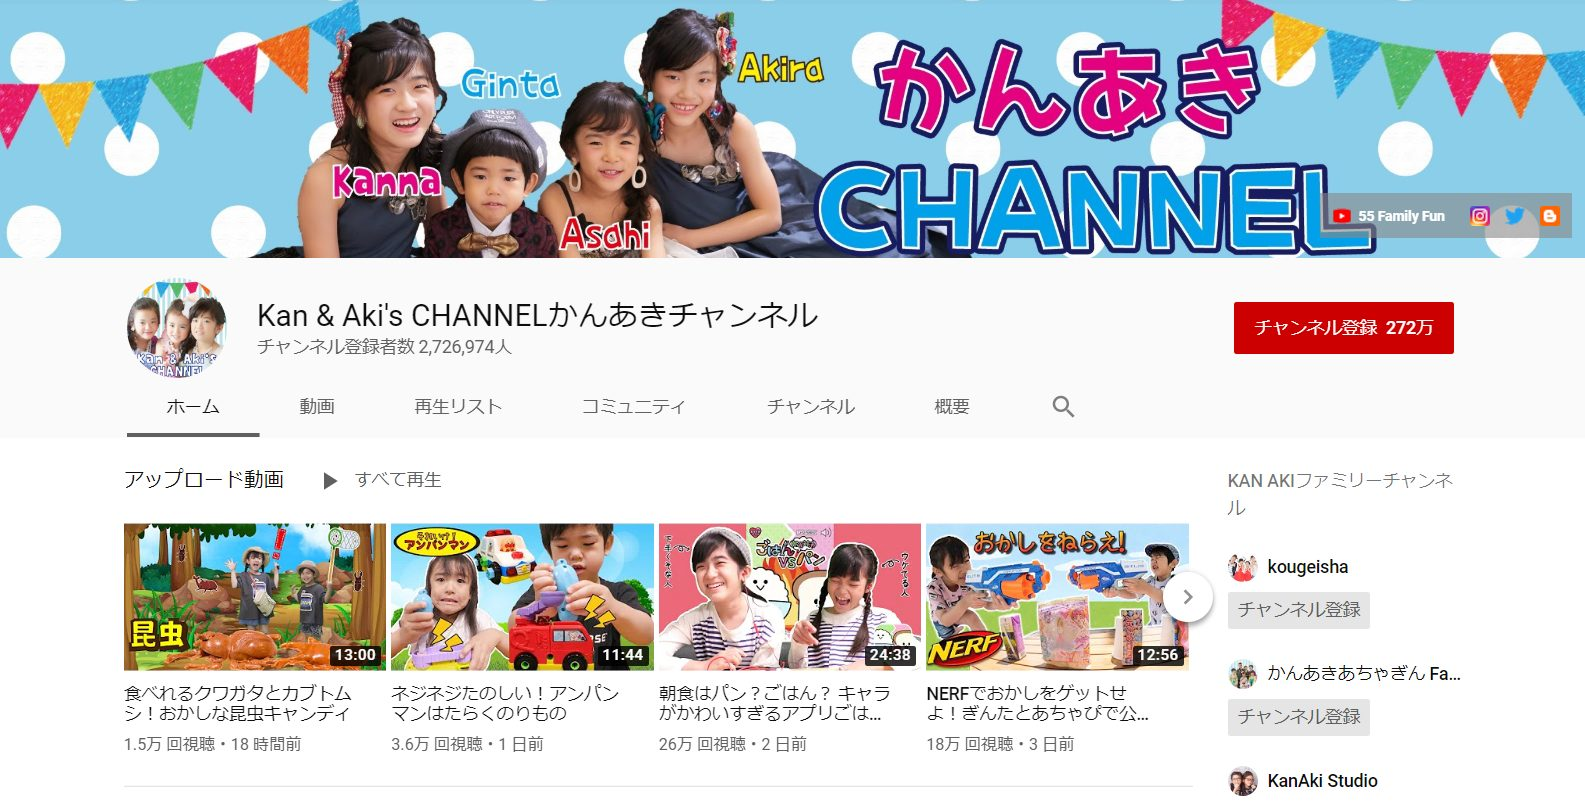 youtuber-kan-aki-channel